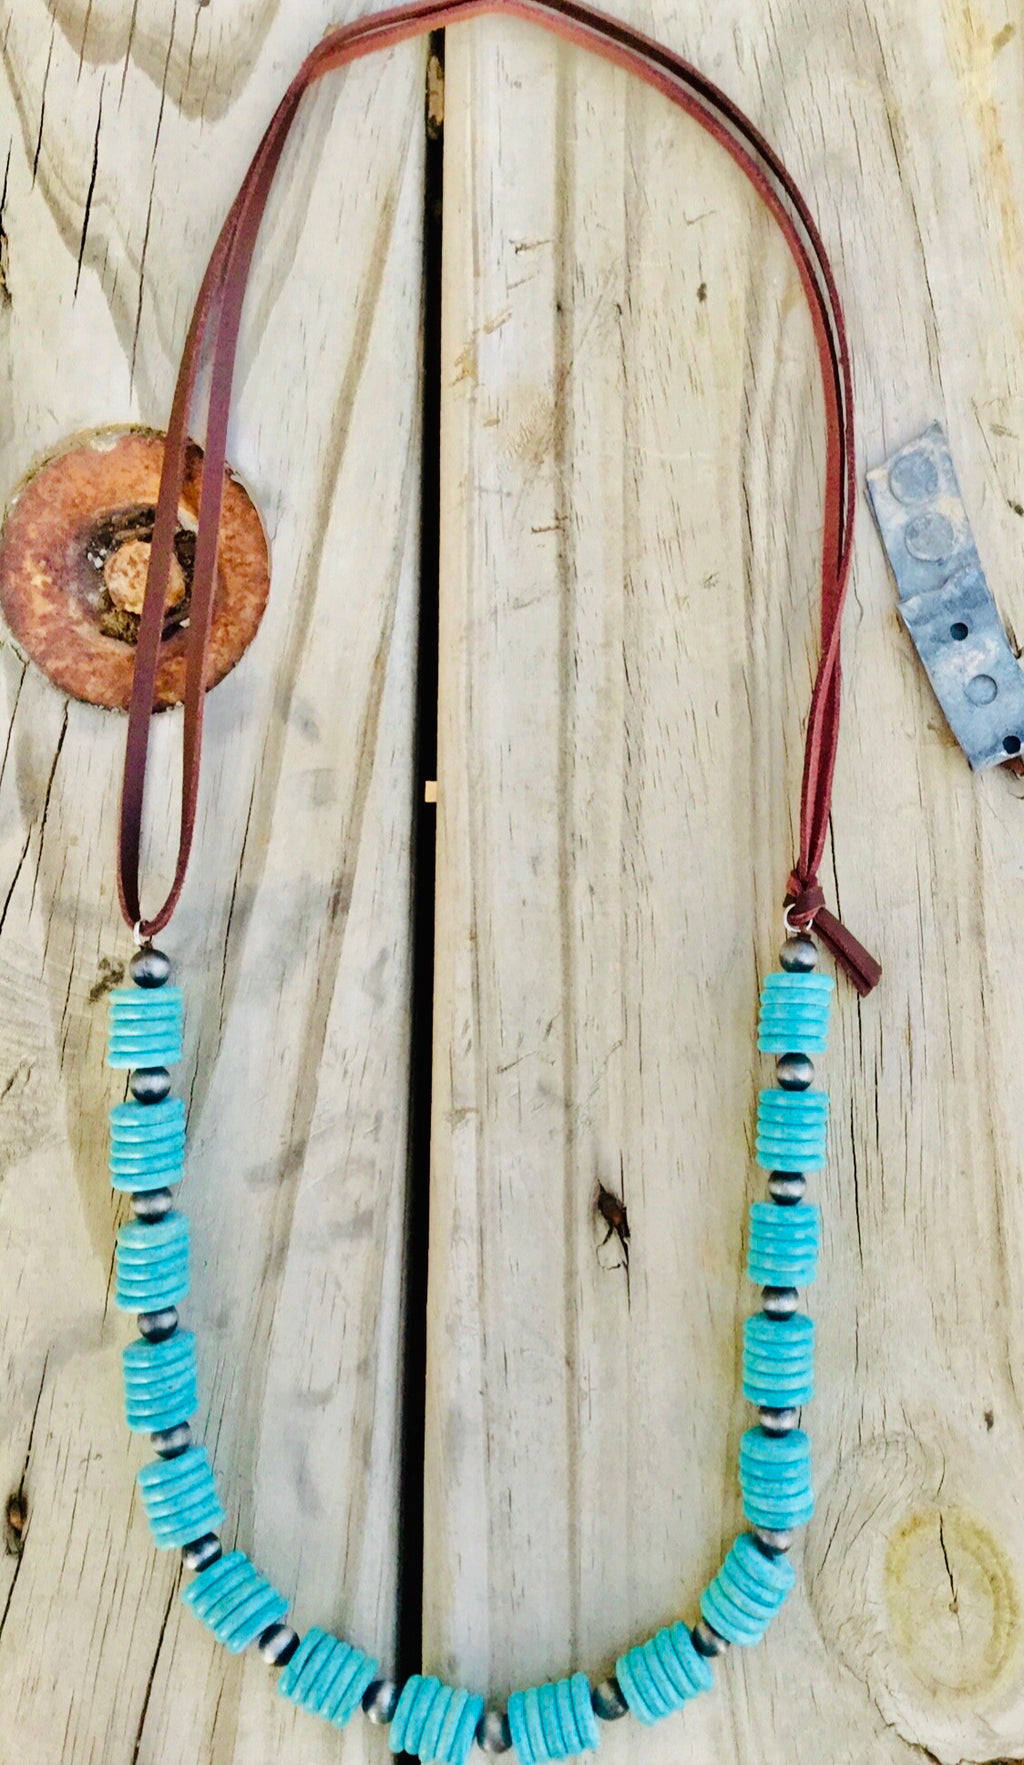 The Silva Turquoise & Silver on Leather Necklace